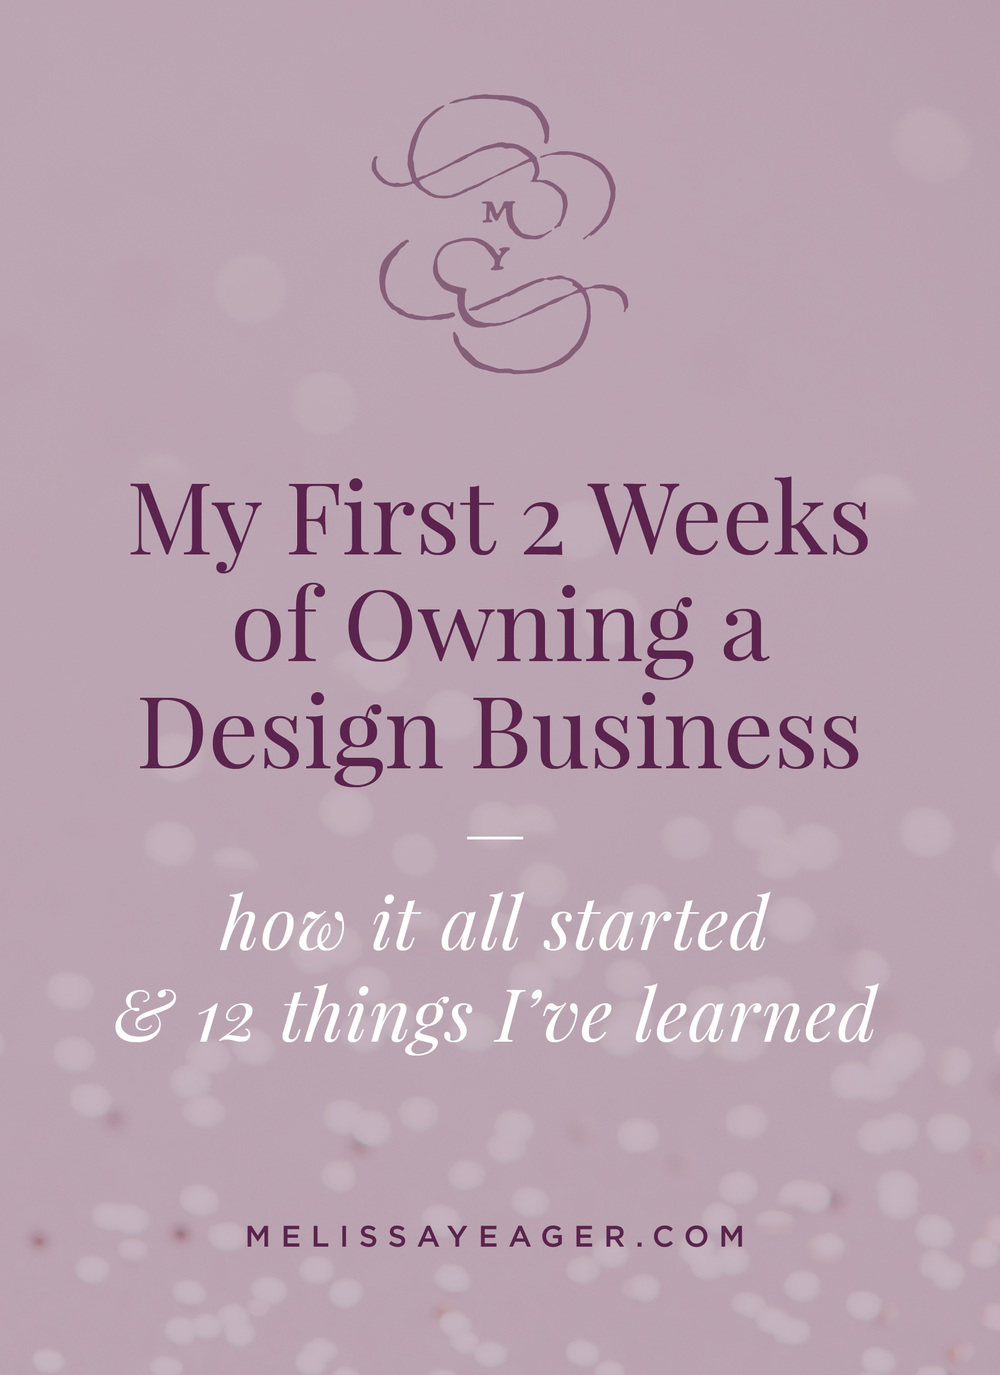 My First 2 Weeks of Owning a Design Business - how it all started & 12 things I've learned